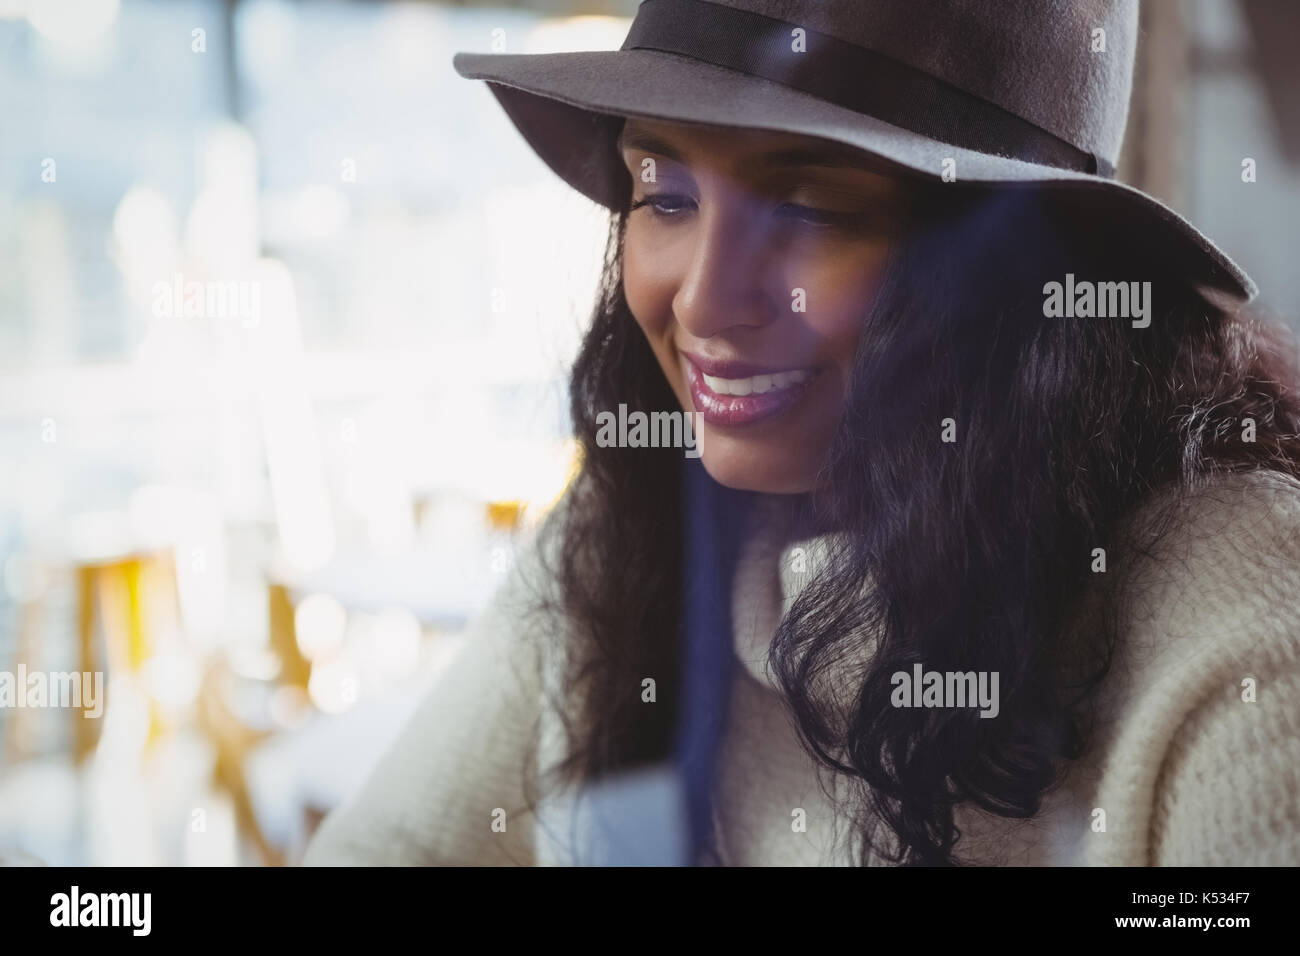 Close-up of young woman wearing hat in cafe - Stock Image